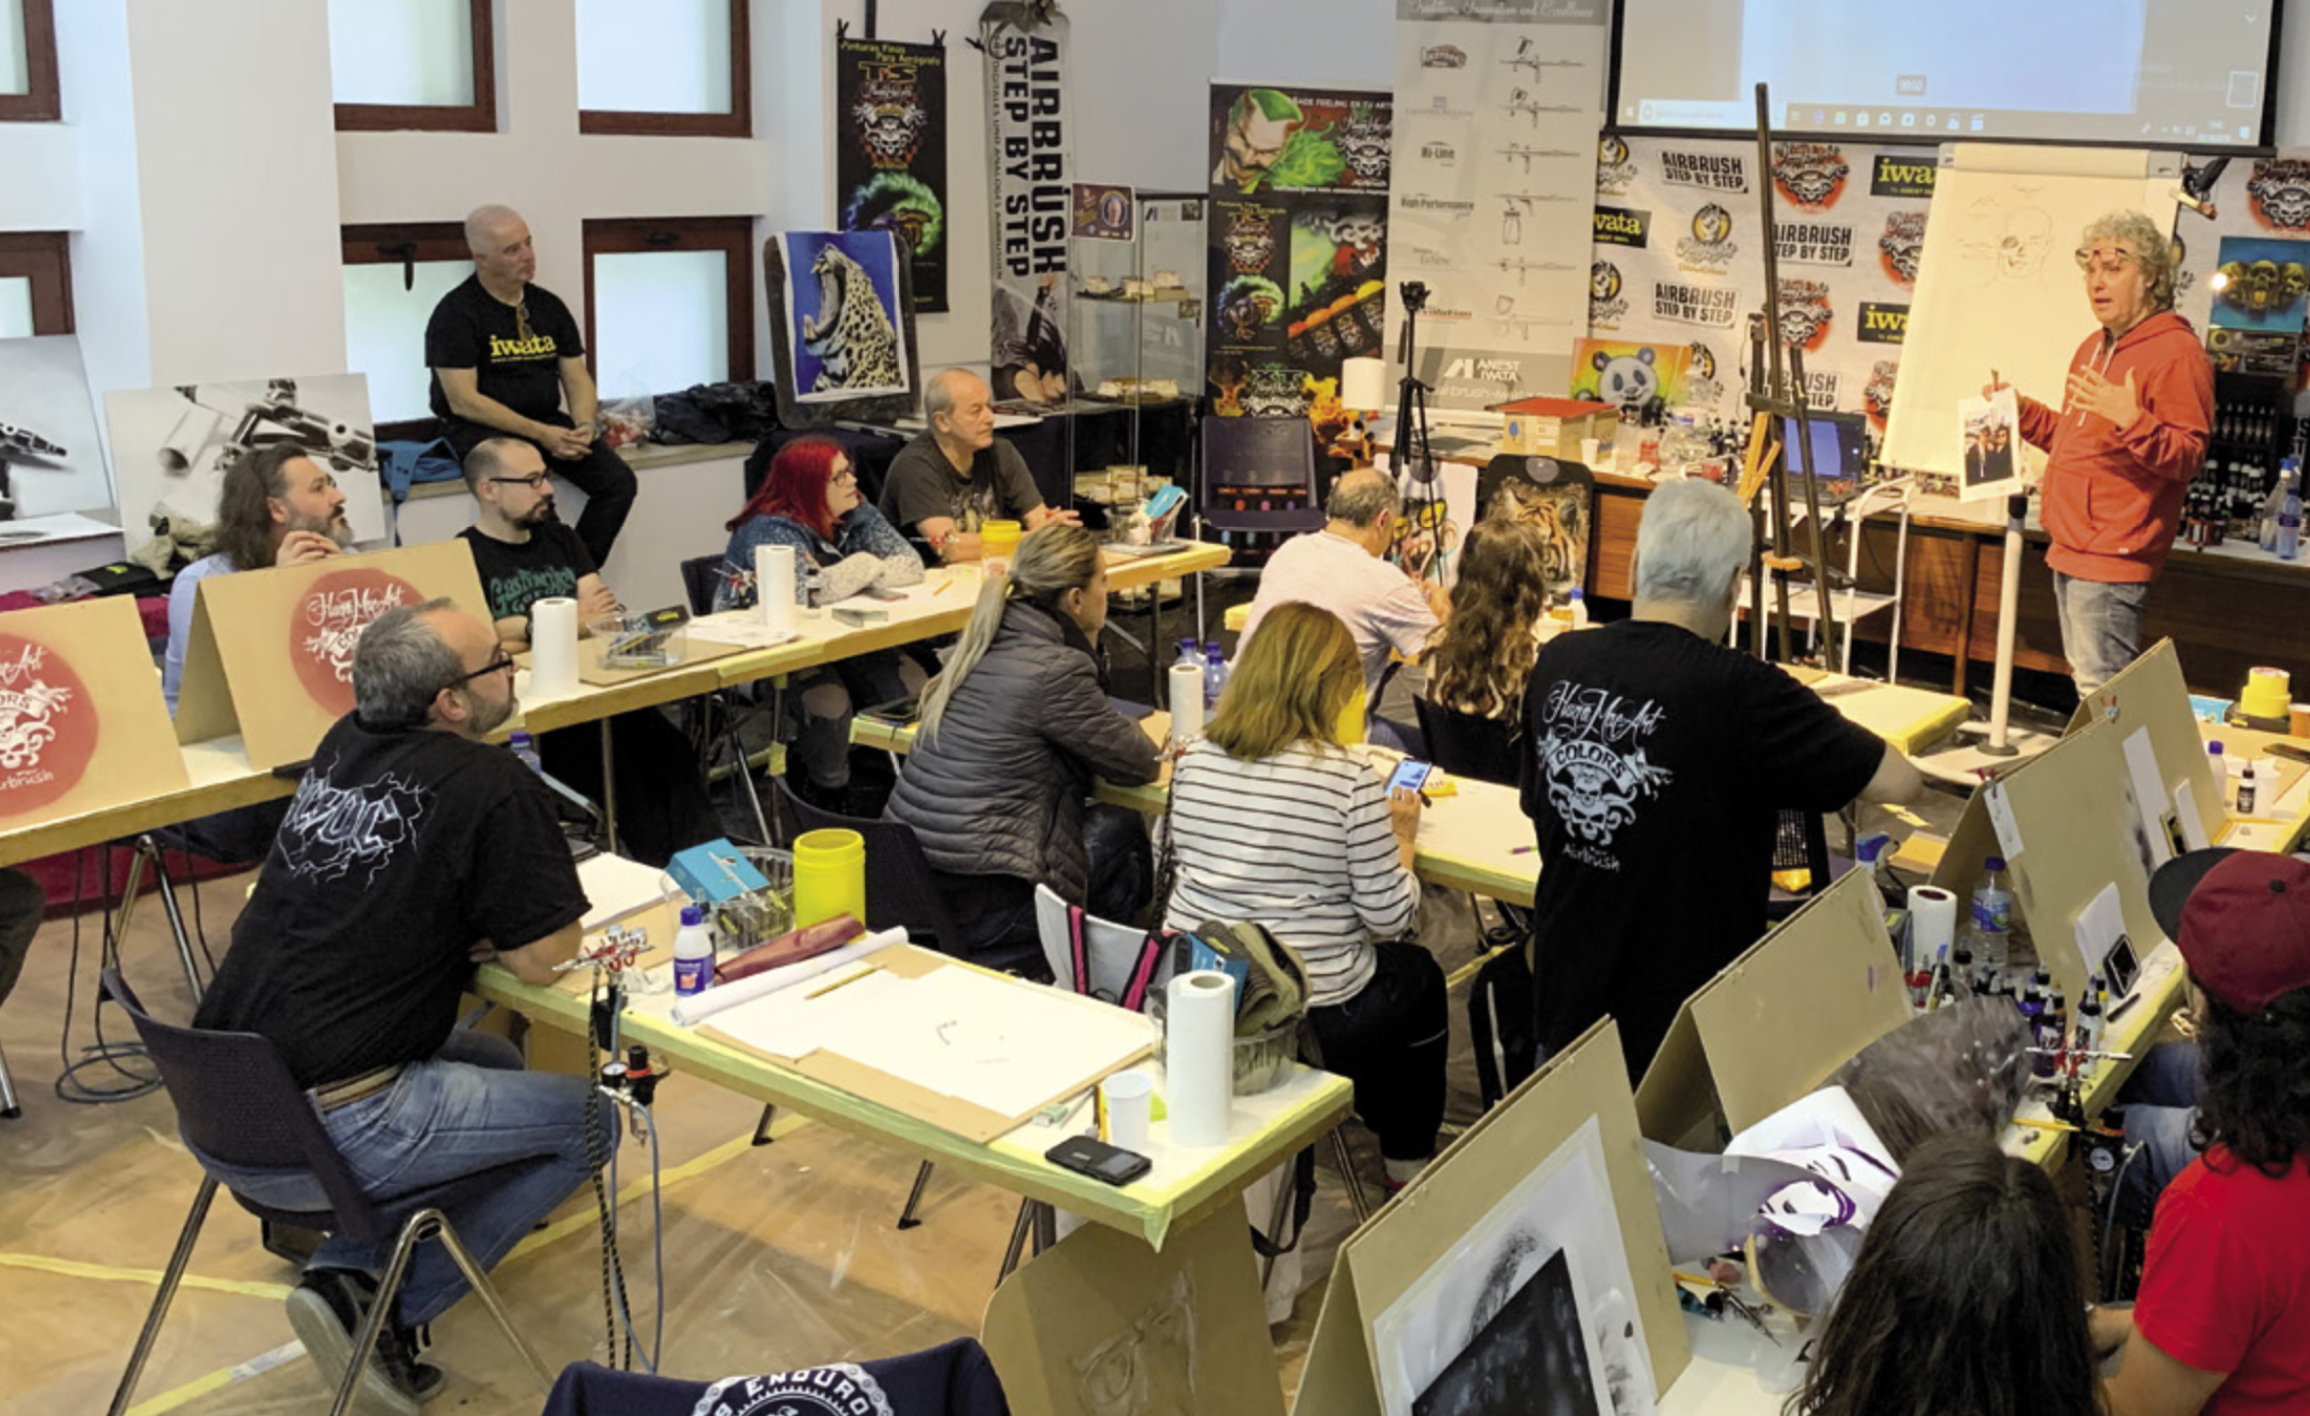 European-South American Rendezvous in Spain's First Ever International Airbrush Event